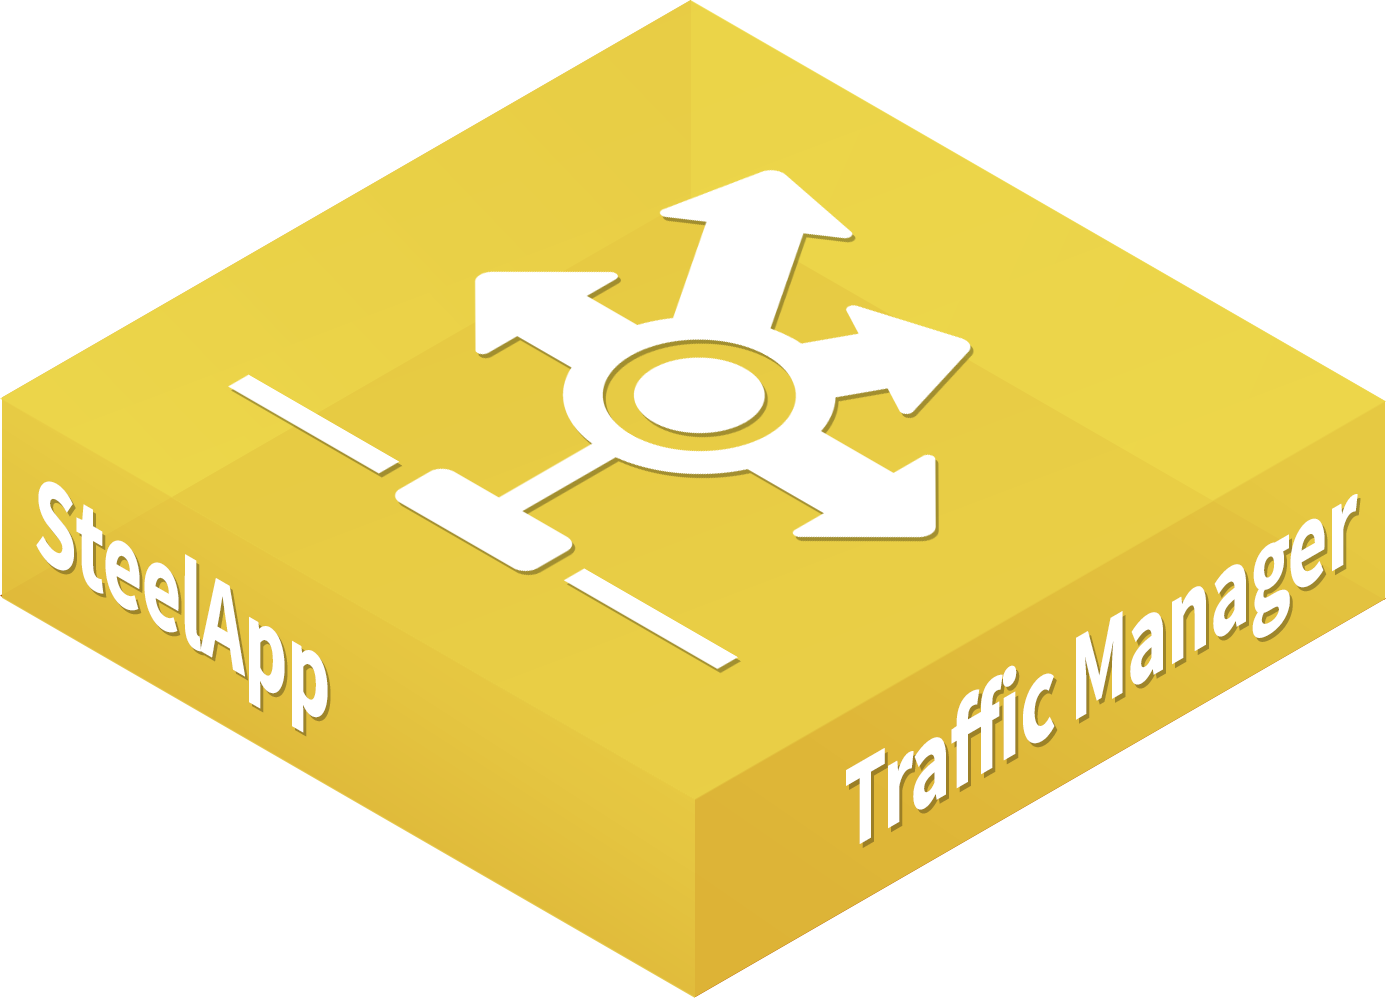 New-SteelApp-TrafficManager.png